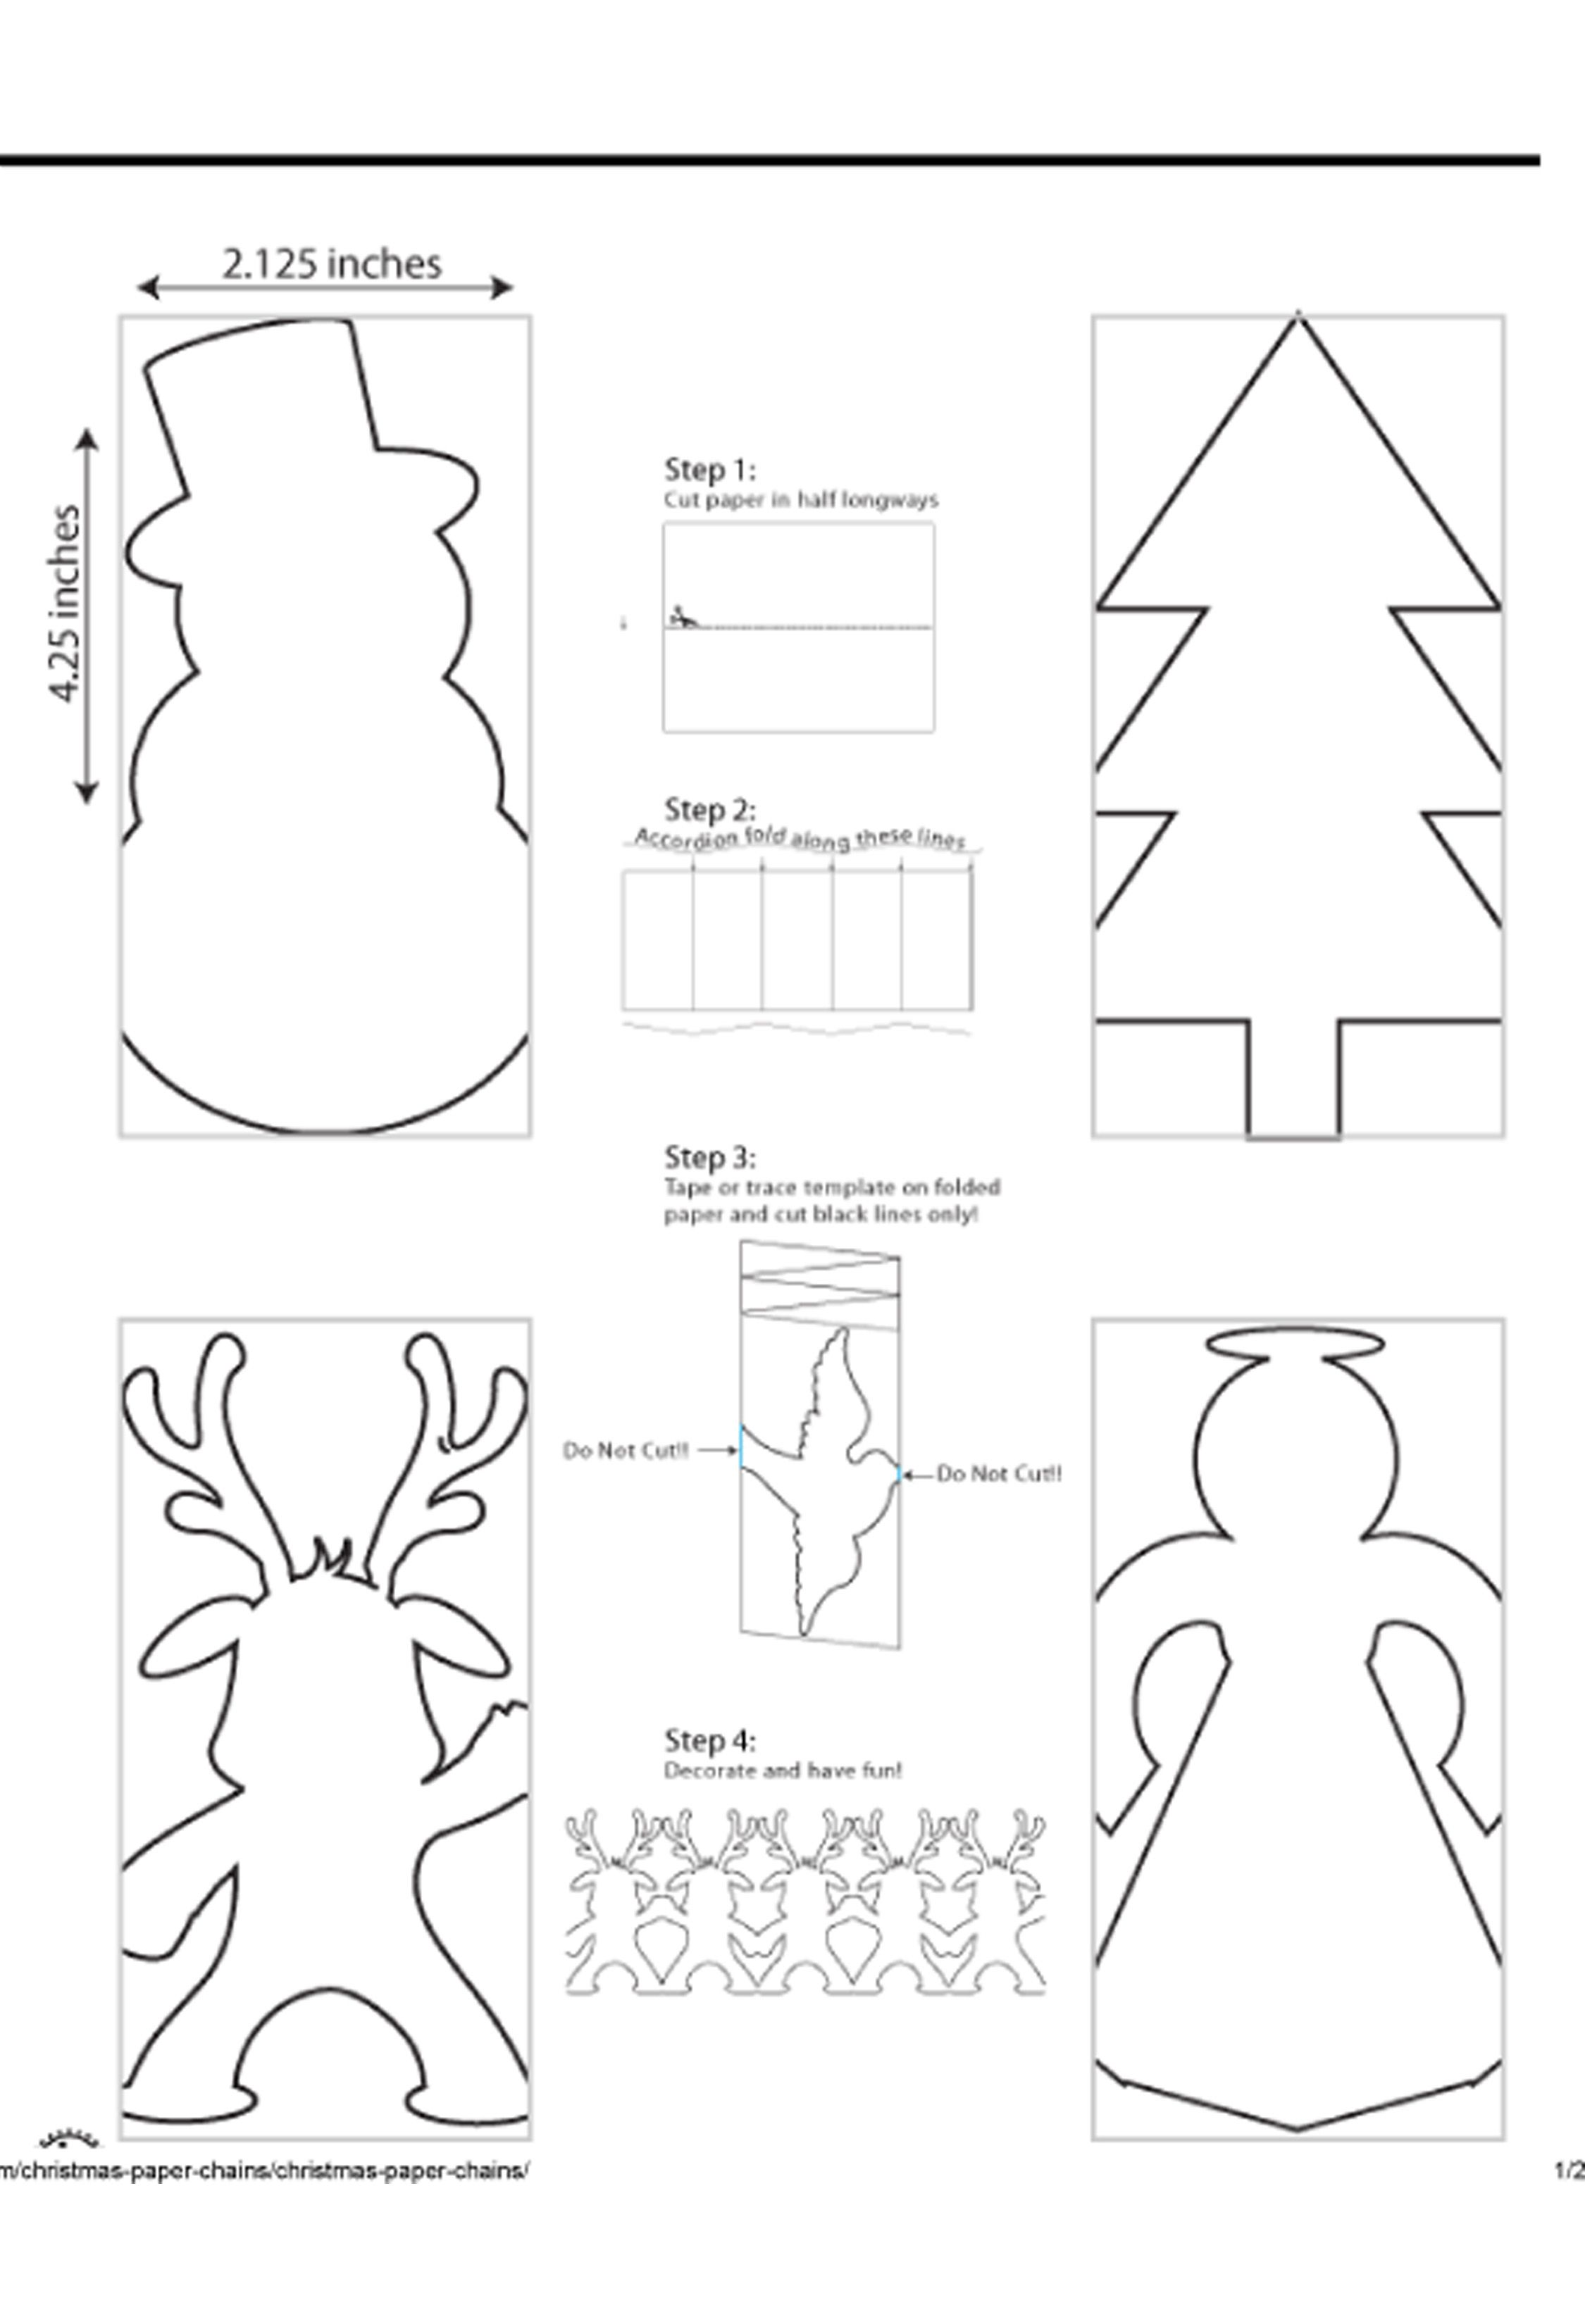 Teach Child How To Read Printable Paper Cutting Patterns